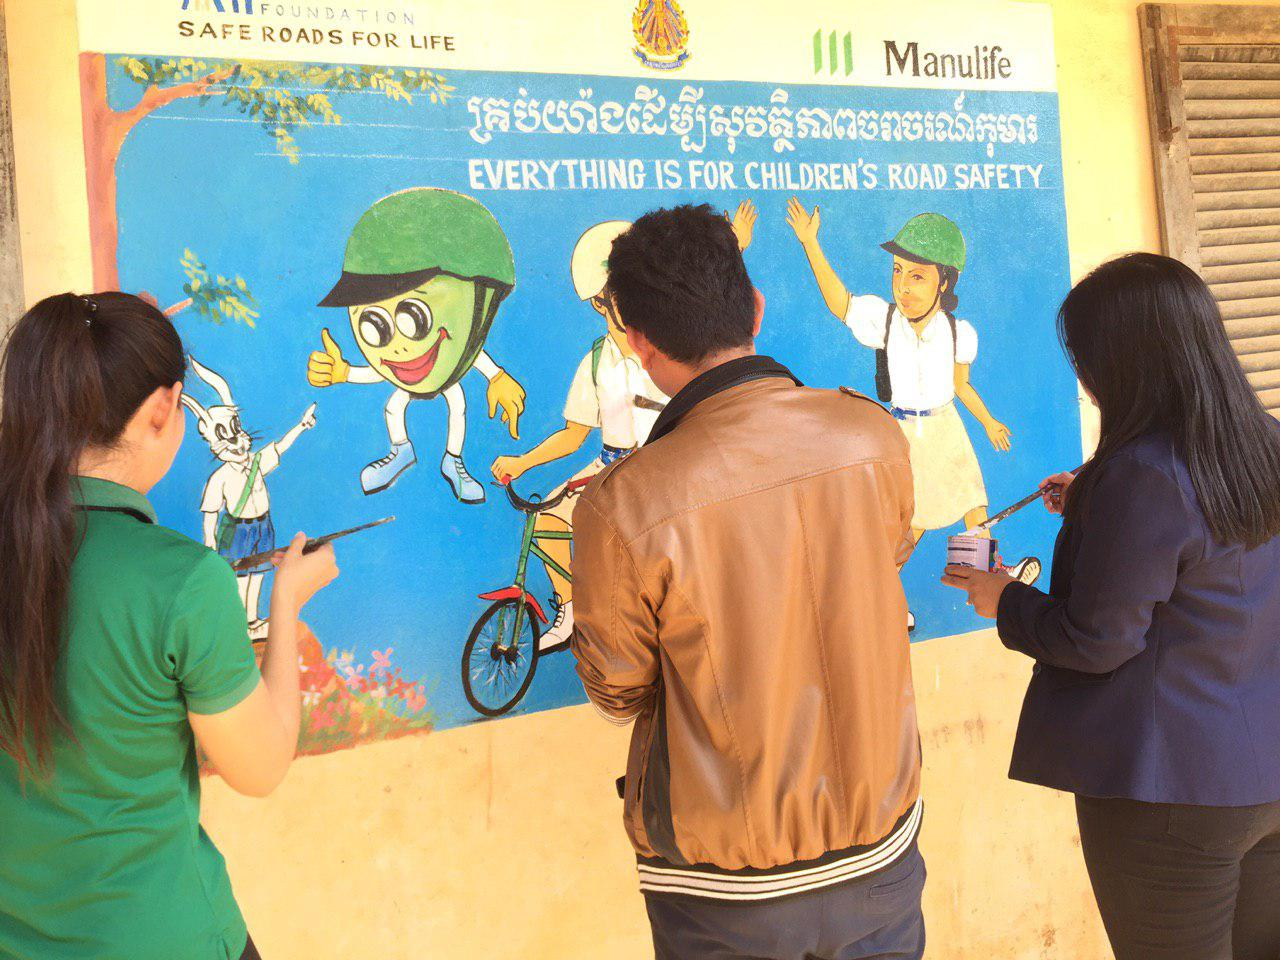 """Everything is for children's road safety"" message painted on walls of school in Cambodia"